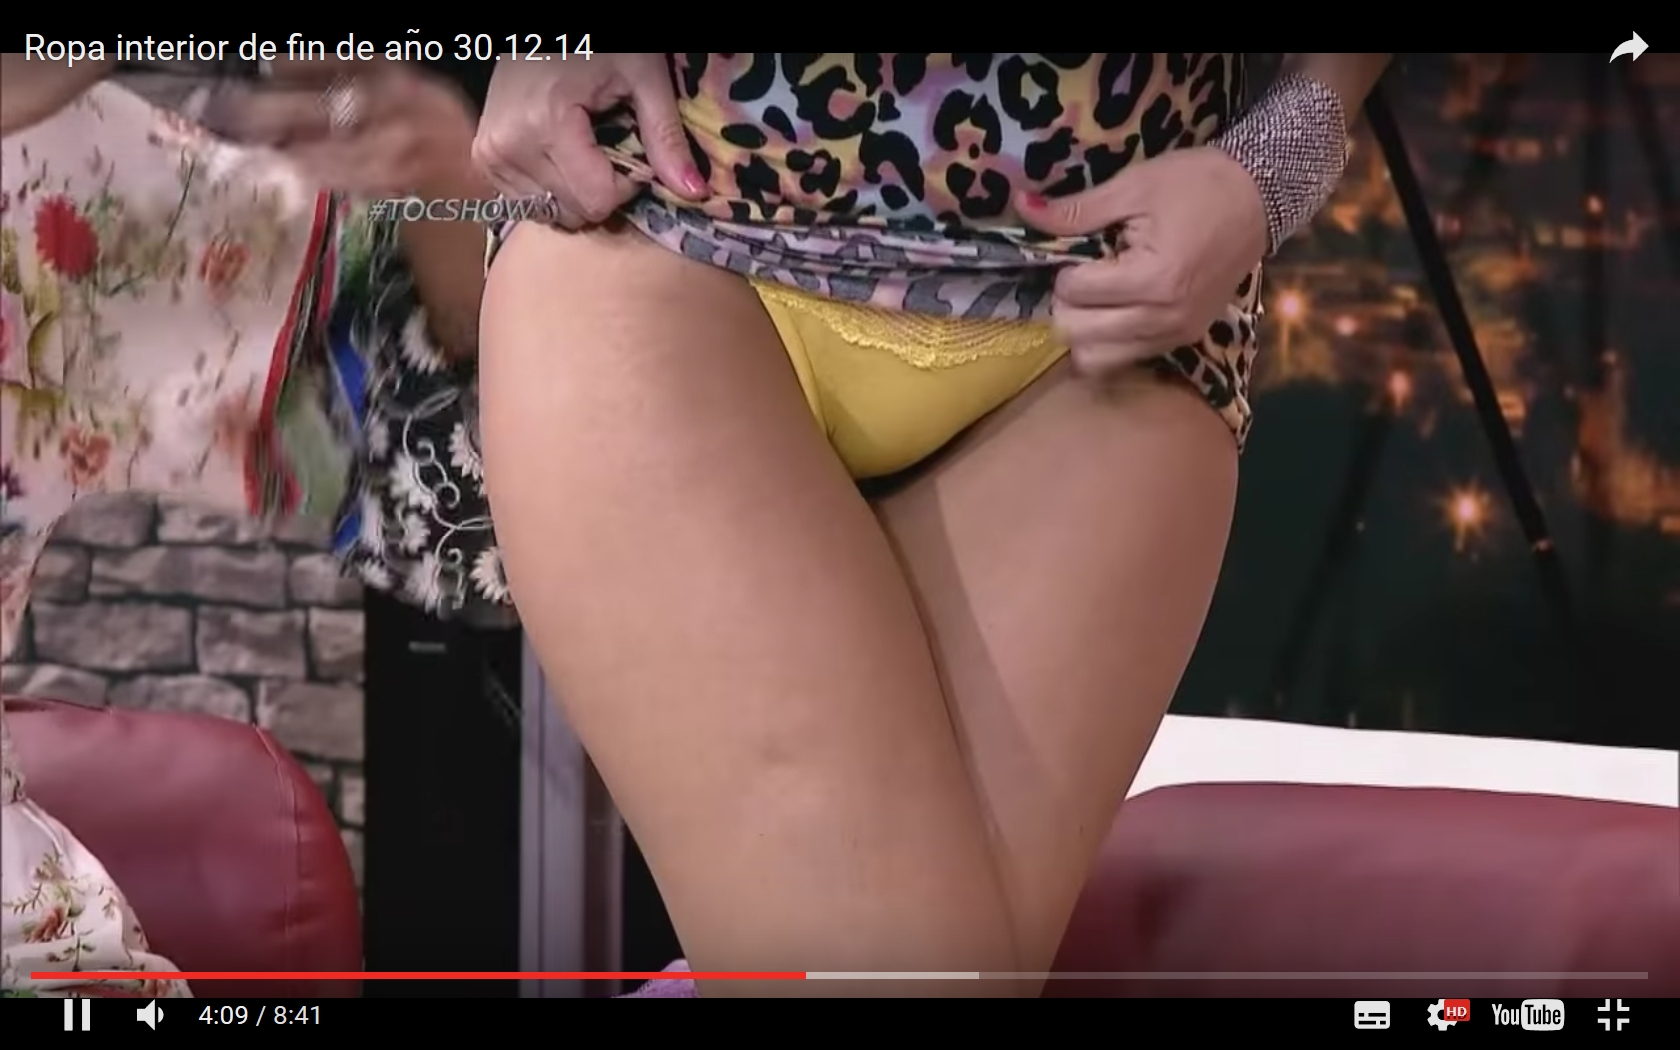 Toc Show Skirt Lifting – Hotties show panties | Daily Girls @ Female Update